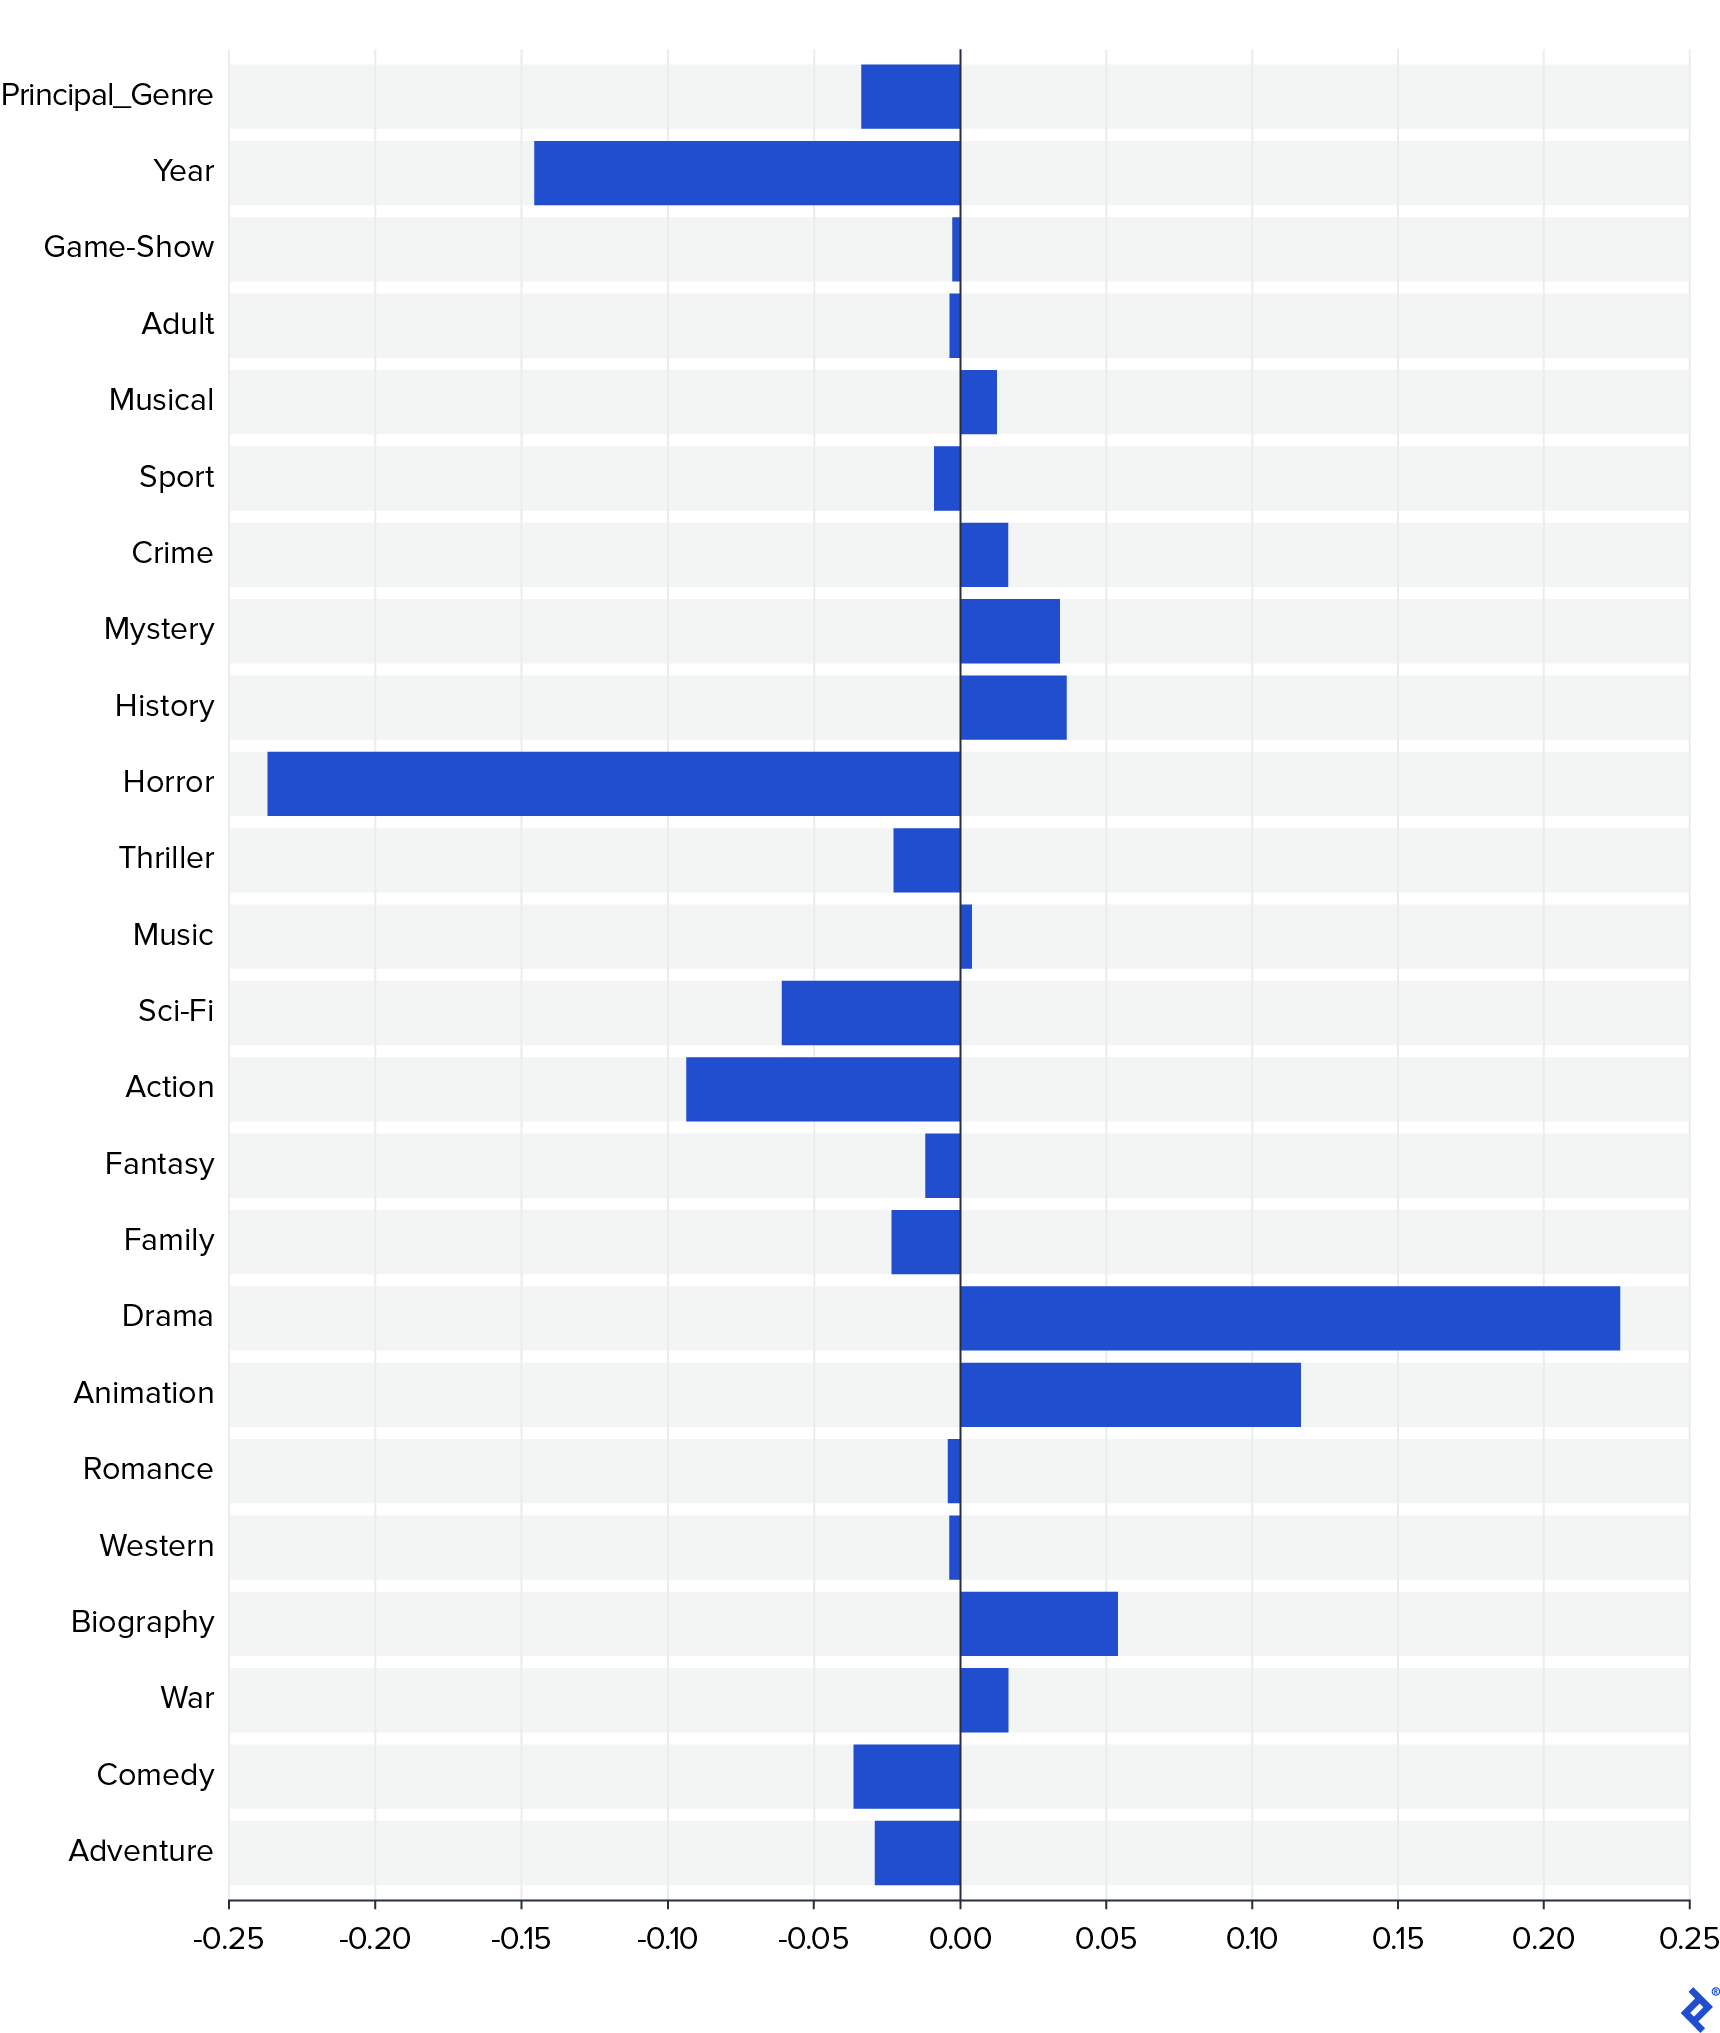 A bar graph of linear model weights ranging from nearly -0.25 for Horror to nearly 0.25 for Drama.